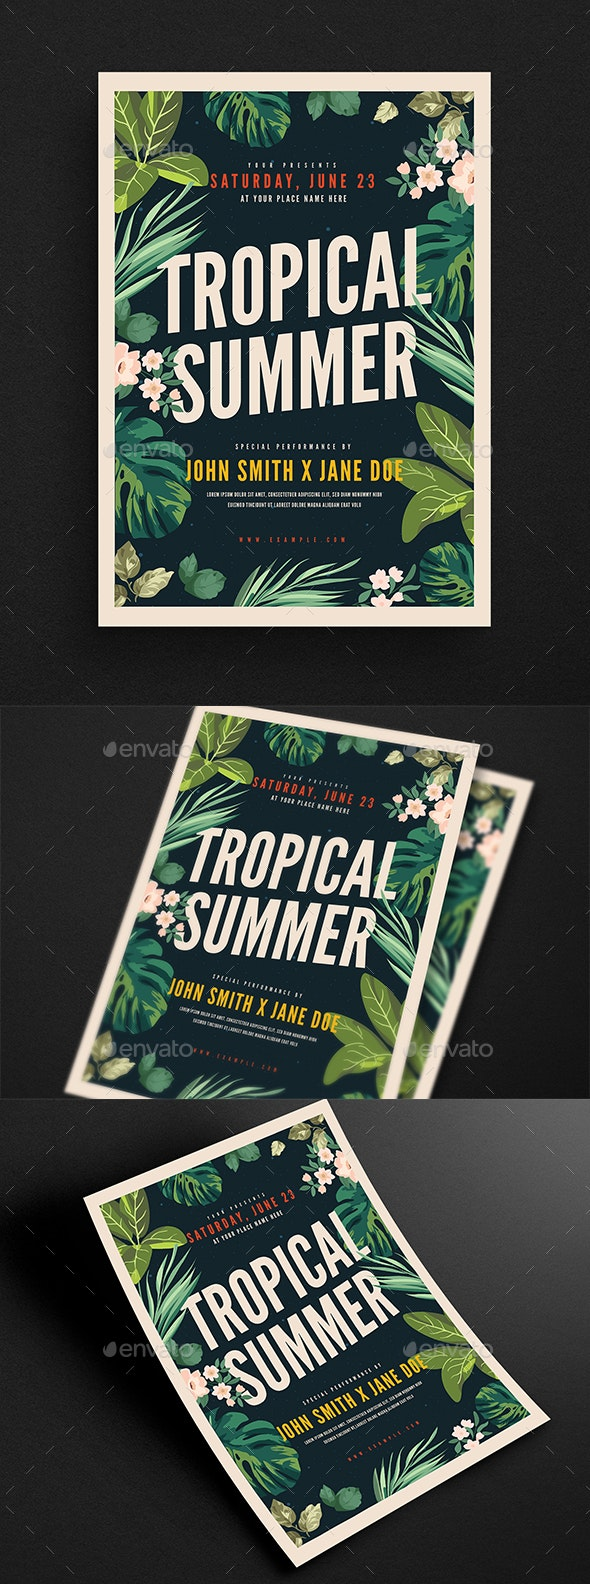 Tropical Summer Party Event Flyer - Flyers Print Templates